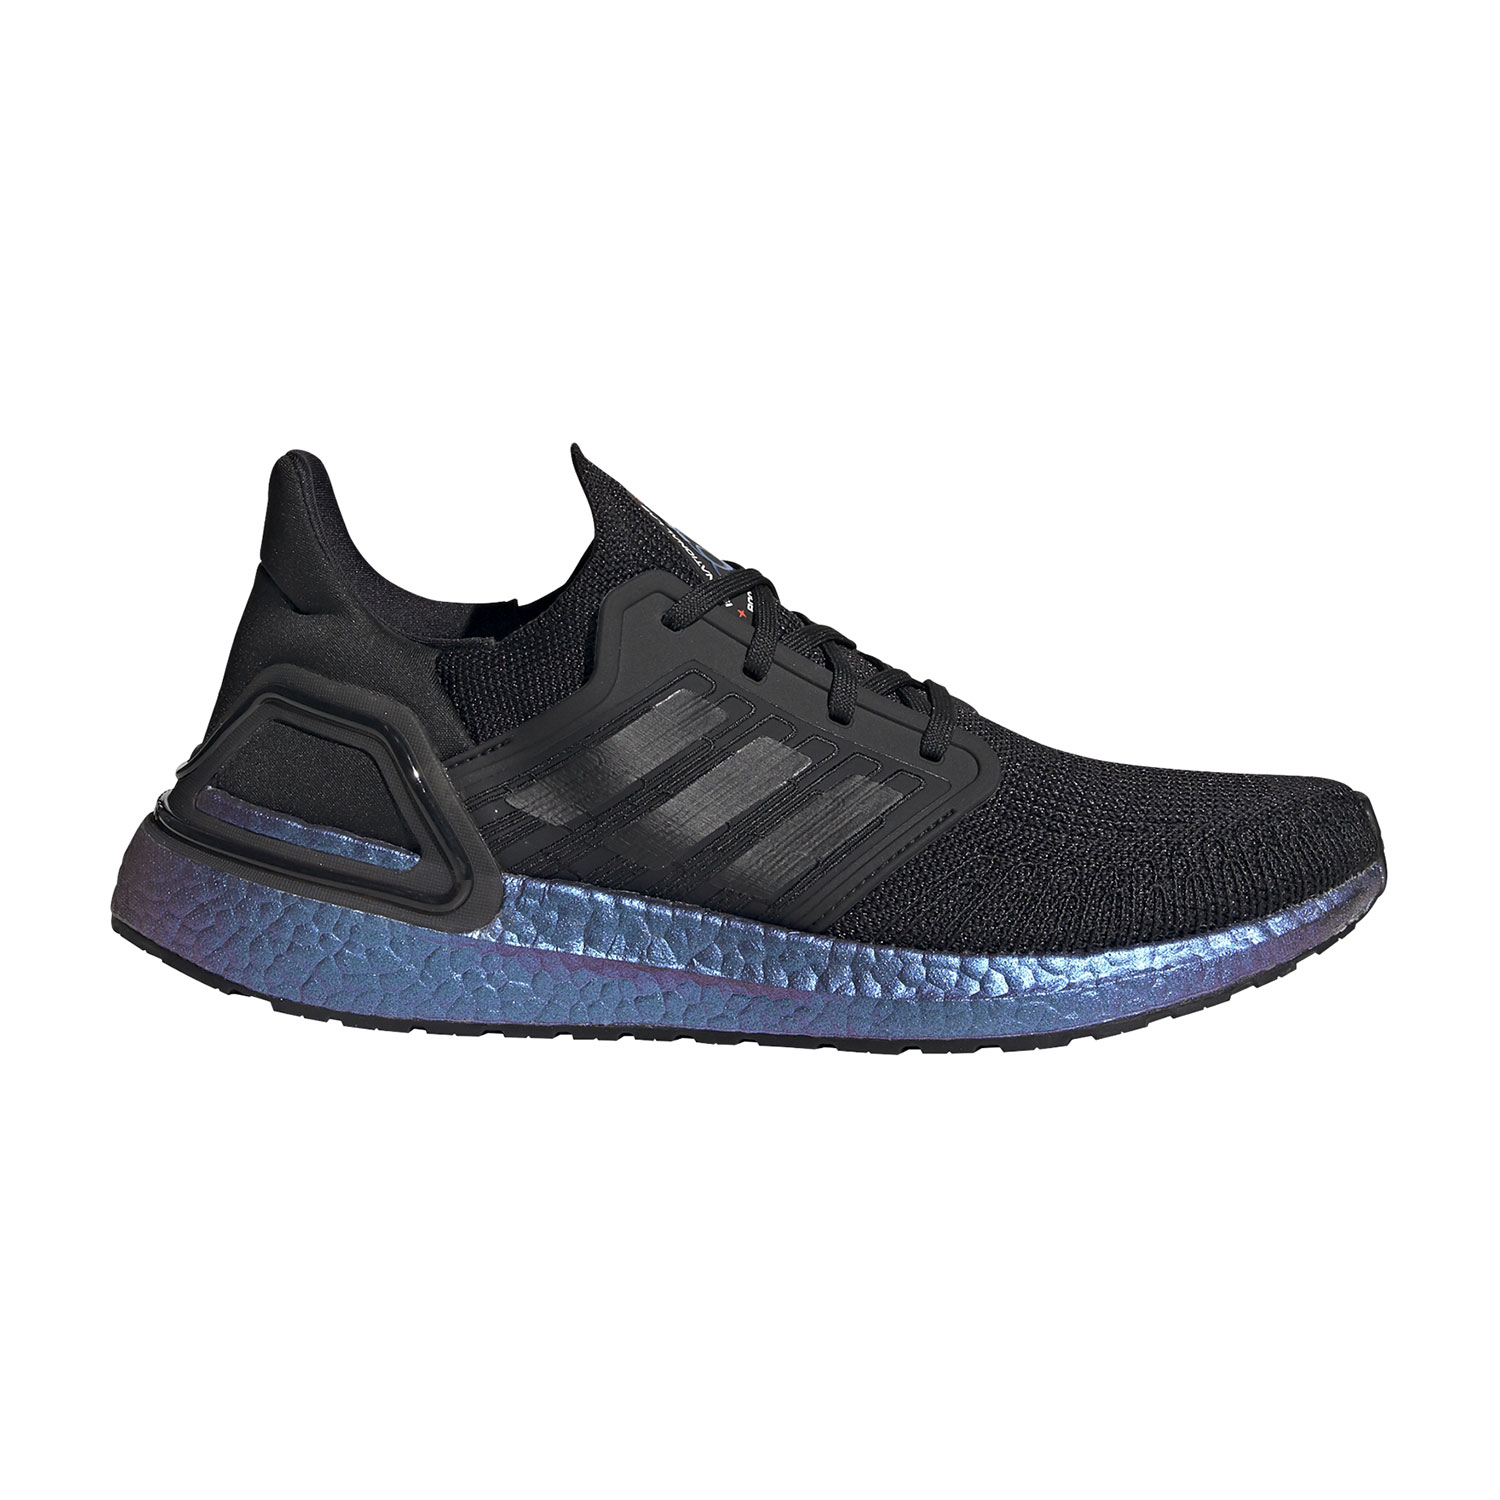 Ultraboost 20 ISS National Lab Edition